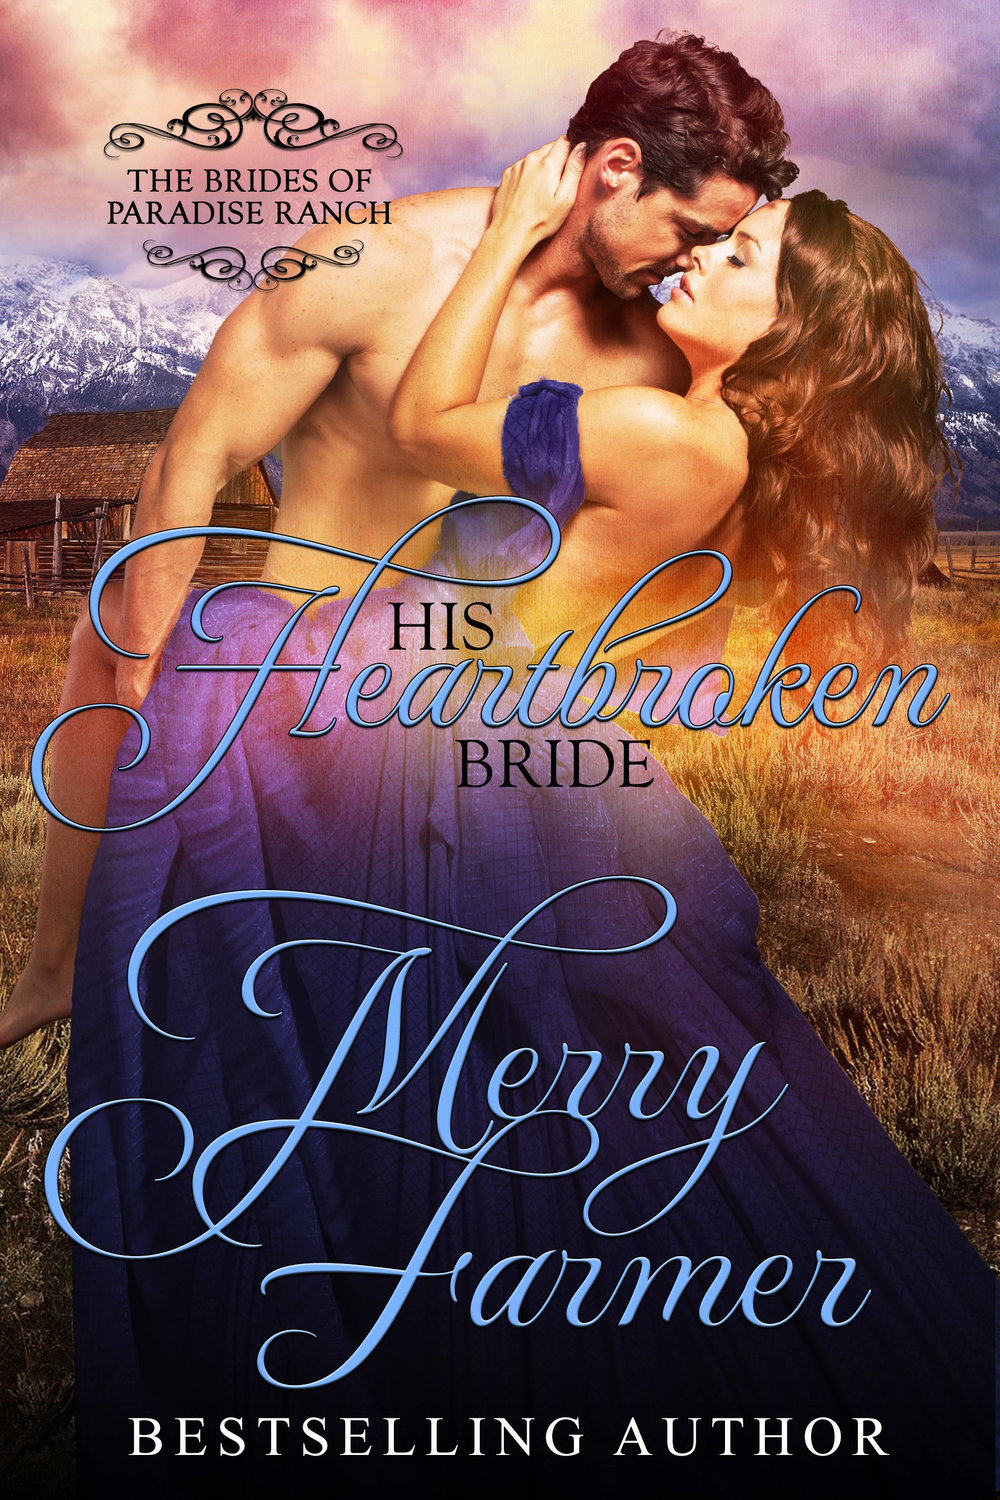 "His Heartbroken Bride (Book 4) - Libby Chance Sims was orphaned, along with her siblings, at an early age, traveled west on the Oregon Trail, and thought she had her fairytale ending when she met and married a good man at trail's end. But ten years later, when her husband is killed in a logging accident, her life takes a horrific turn at the hands of unscrupulous ""family friend,"" Hector. Fearing for herself and the lives of her two boys, she flees Oregon for Haskell, Wyoming and her family. But has she run far enough to escape her past?Mason Montrose has never forgotten Libby, the beautiful, young bride he fell in love with before realizing she was married ten years ago in Oregon. When she steps down from the train in Haskell, dressed in widow's black with fear in her eyes, all of the affection and longing for her that he thought he put behind him returns. He will stop at nothing to protect Libby from the demons chasing her, both real and emotional, even marrying her to keep her safe.Some demons are more sinister than others, though. When Hector arrives in Haskell, it takes more than the power of Mason's love and devotion to Libby to defeat him, it takes an entire community.PLEASE BE ADVISED: Steam Level = HOTIf you would like to read this story without any ""scenes,"" check out Libby: The Heartbroken Bride"